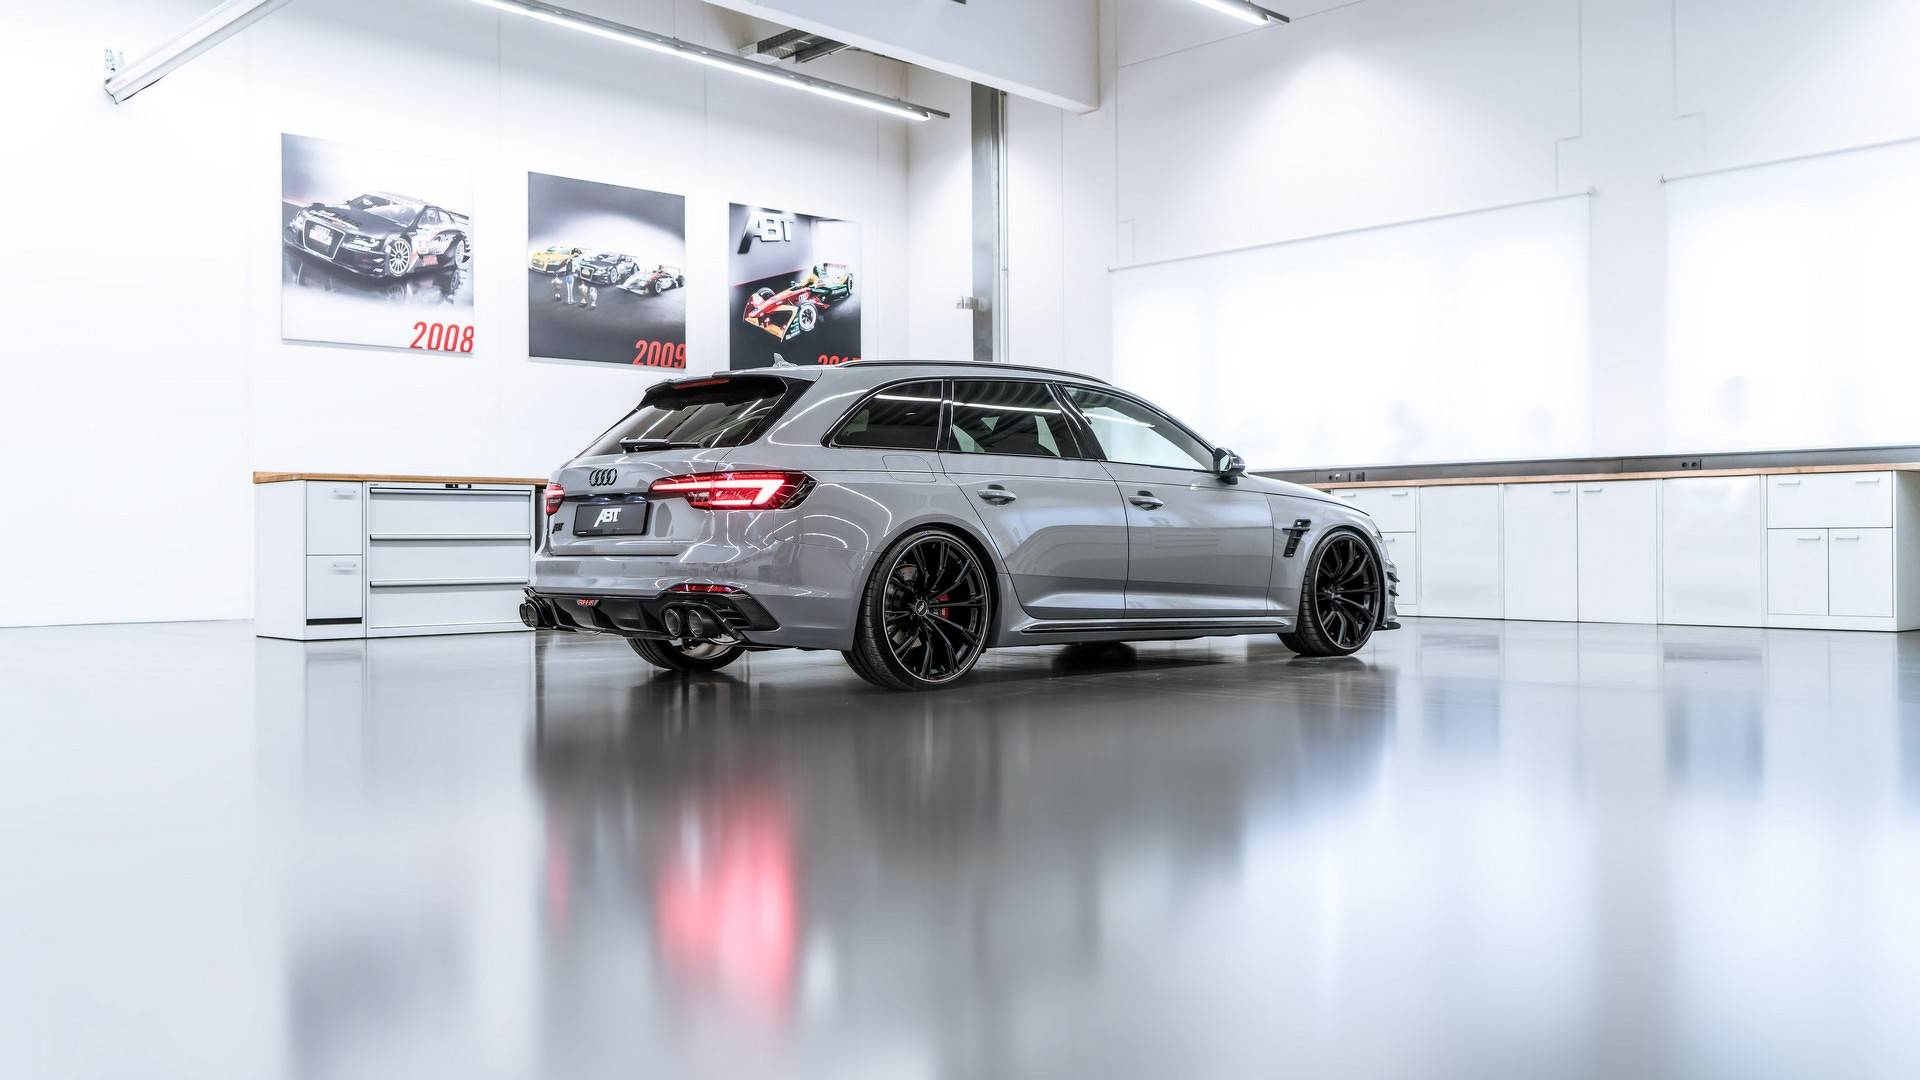 abt-rs4-r-based-on-the-audi-rs4-avant (2)